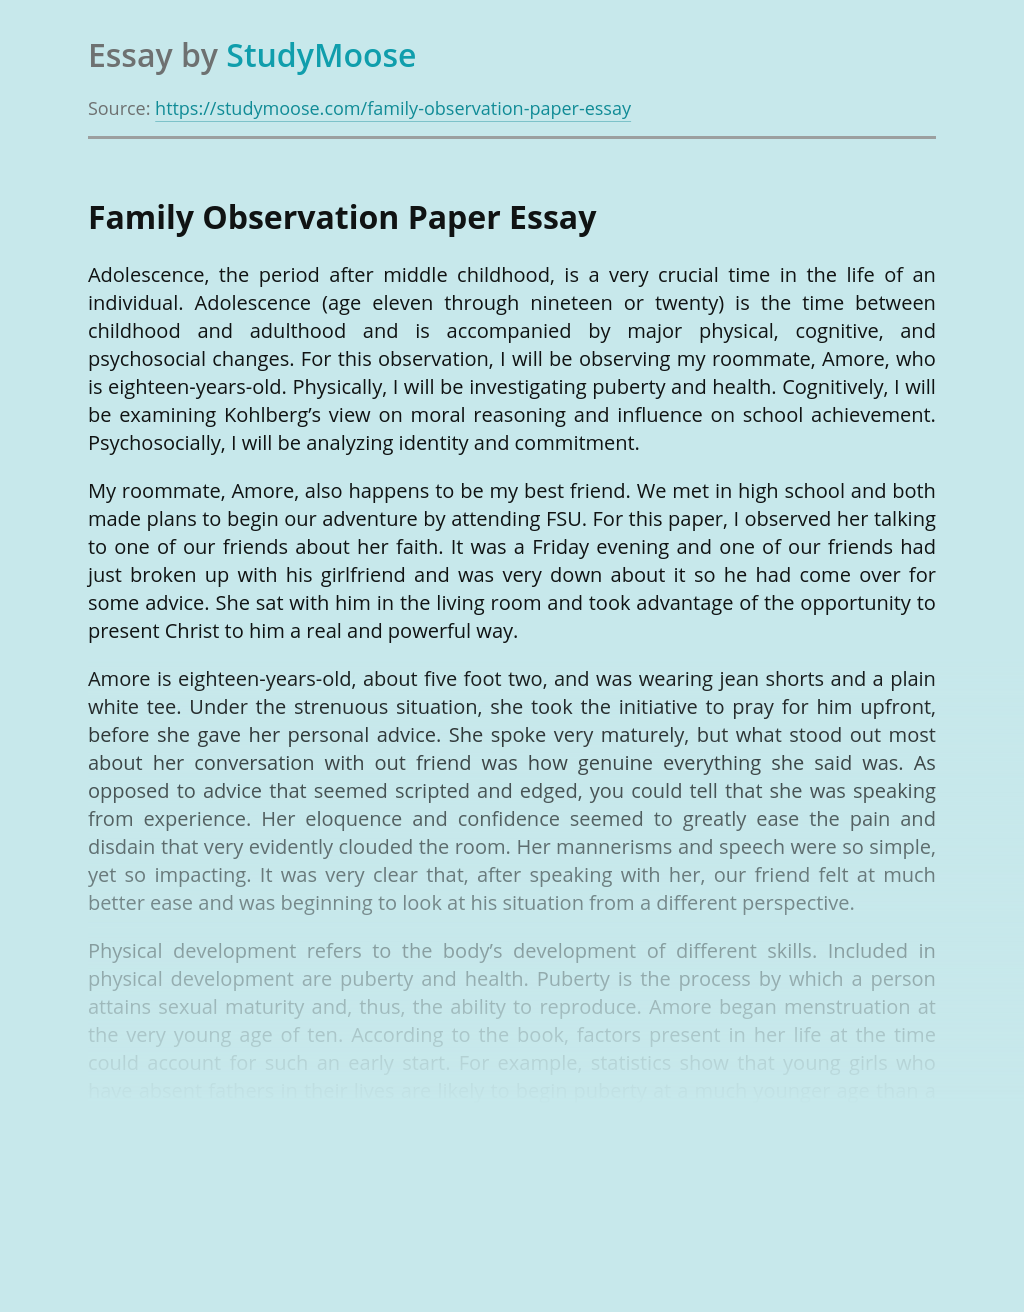 Family Observation Paper